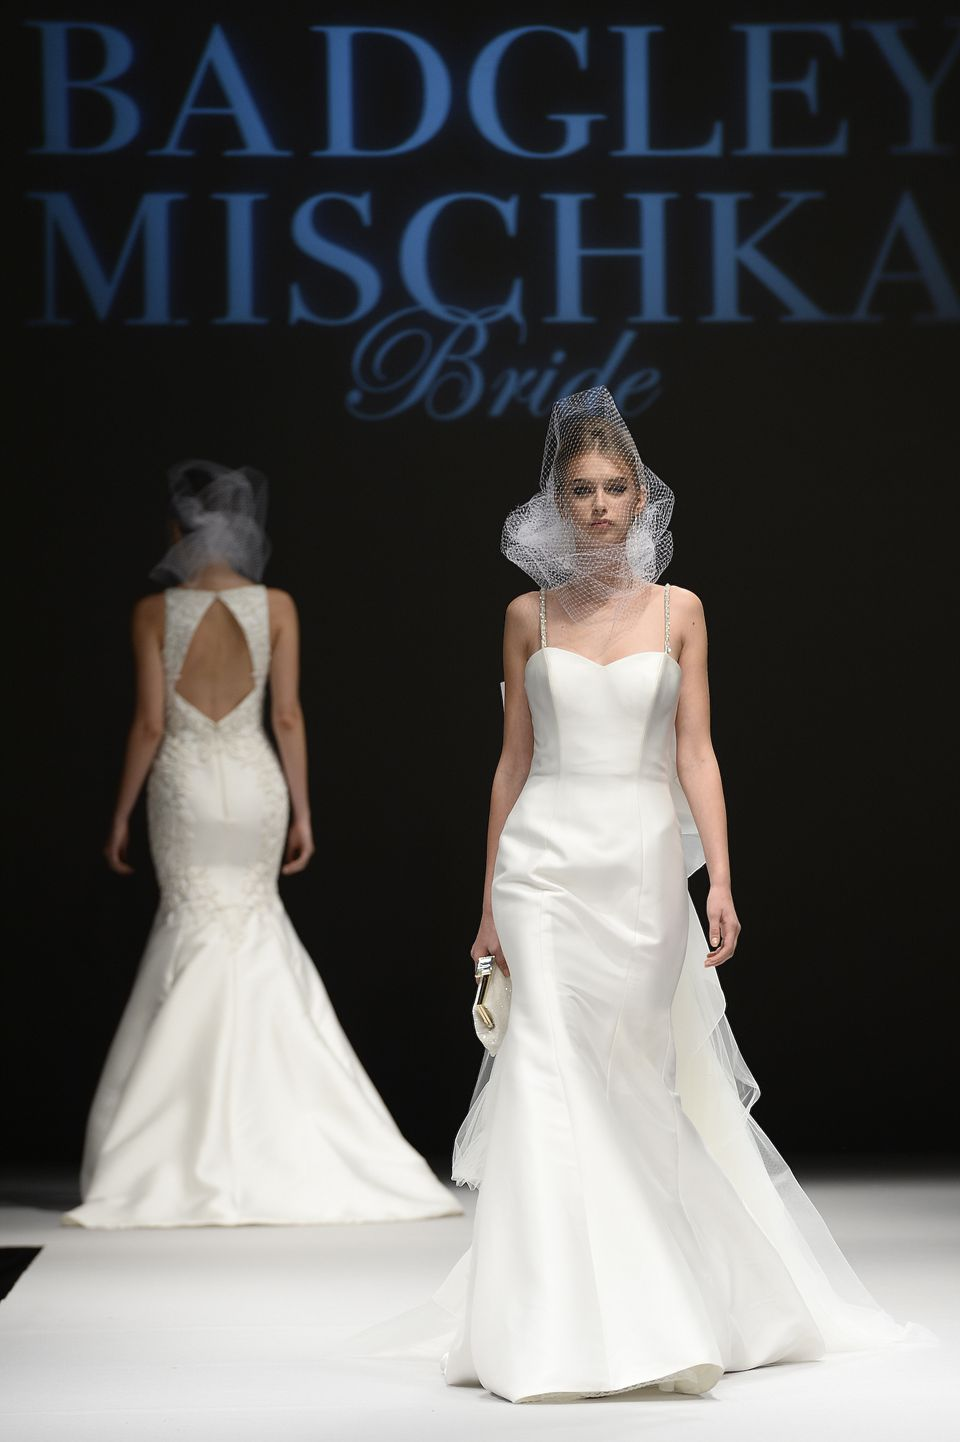 Badgley Mischka Wedding Dress Designer